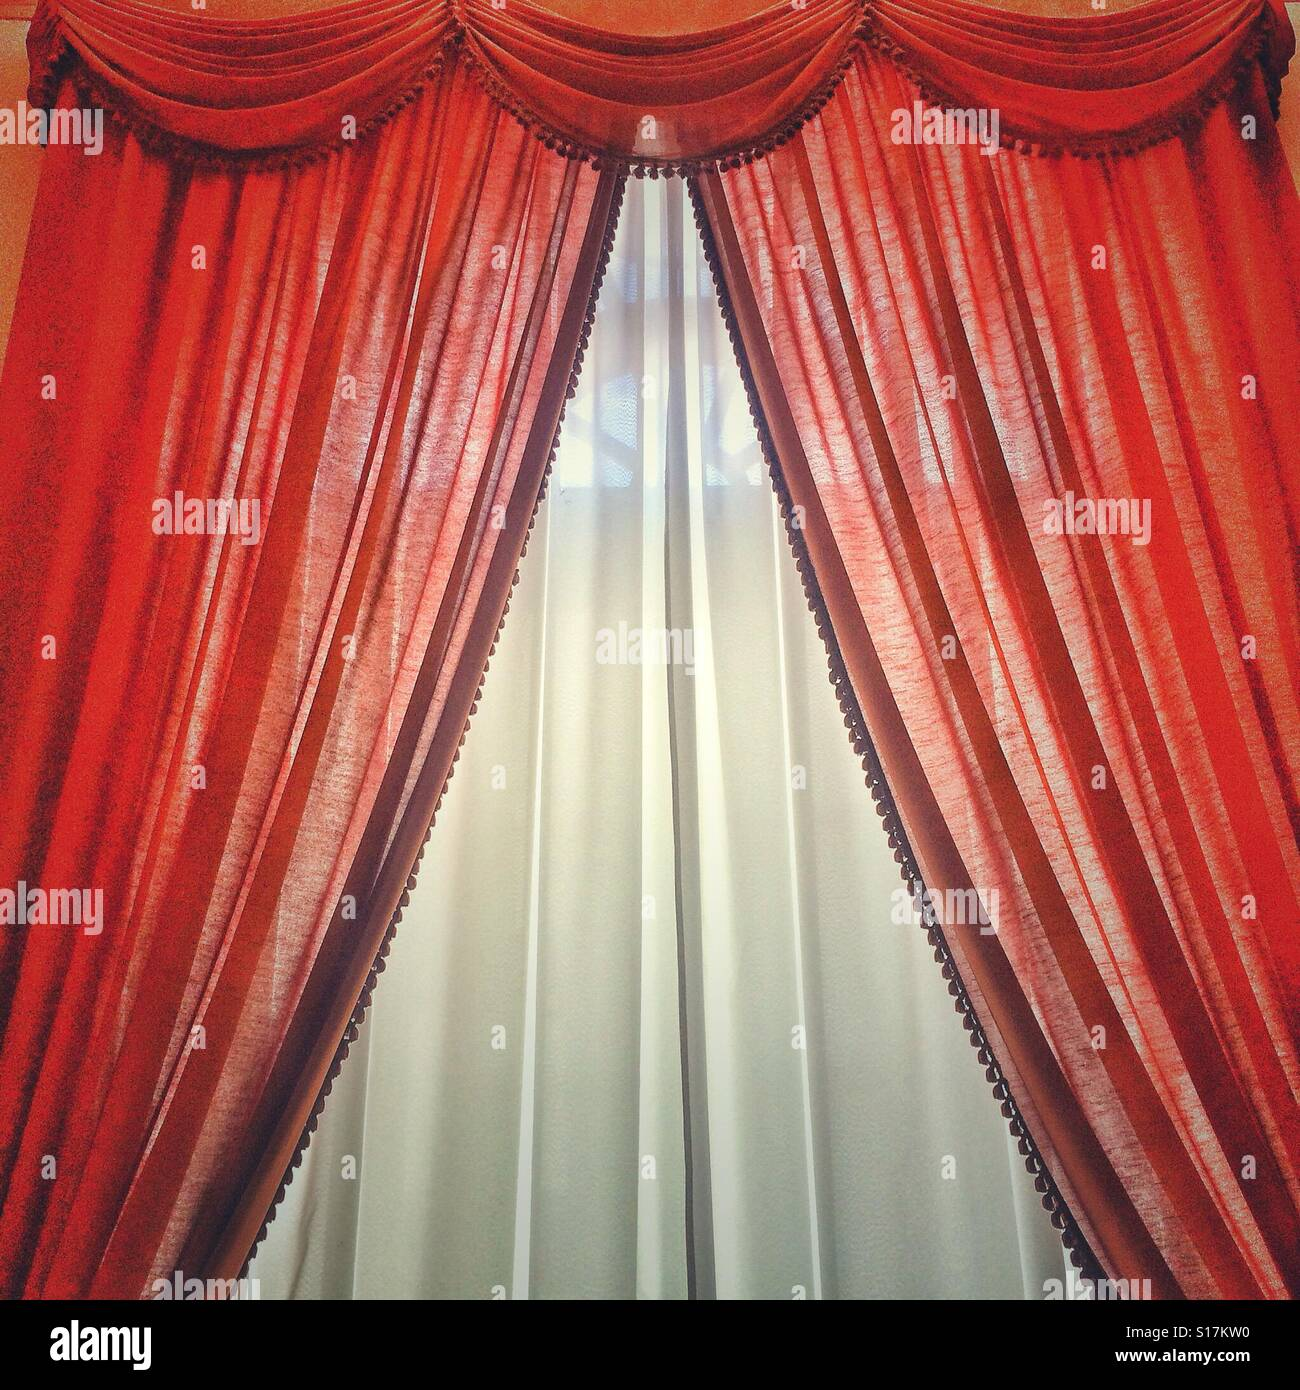 Bright red and white curtains - Stock Image